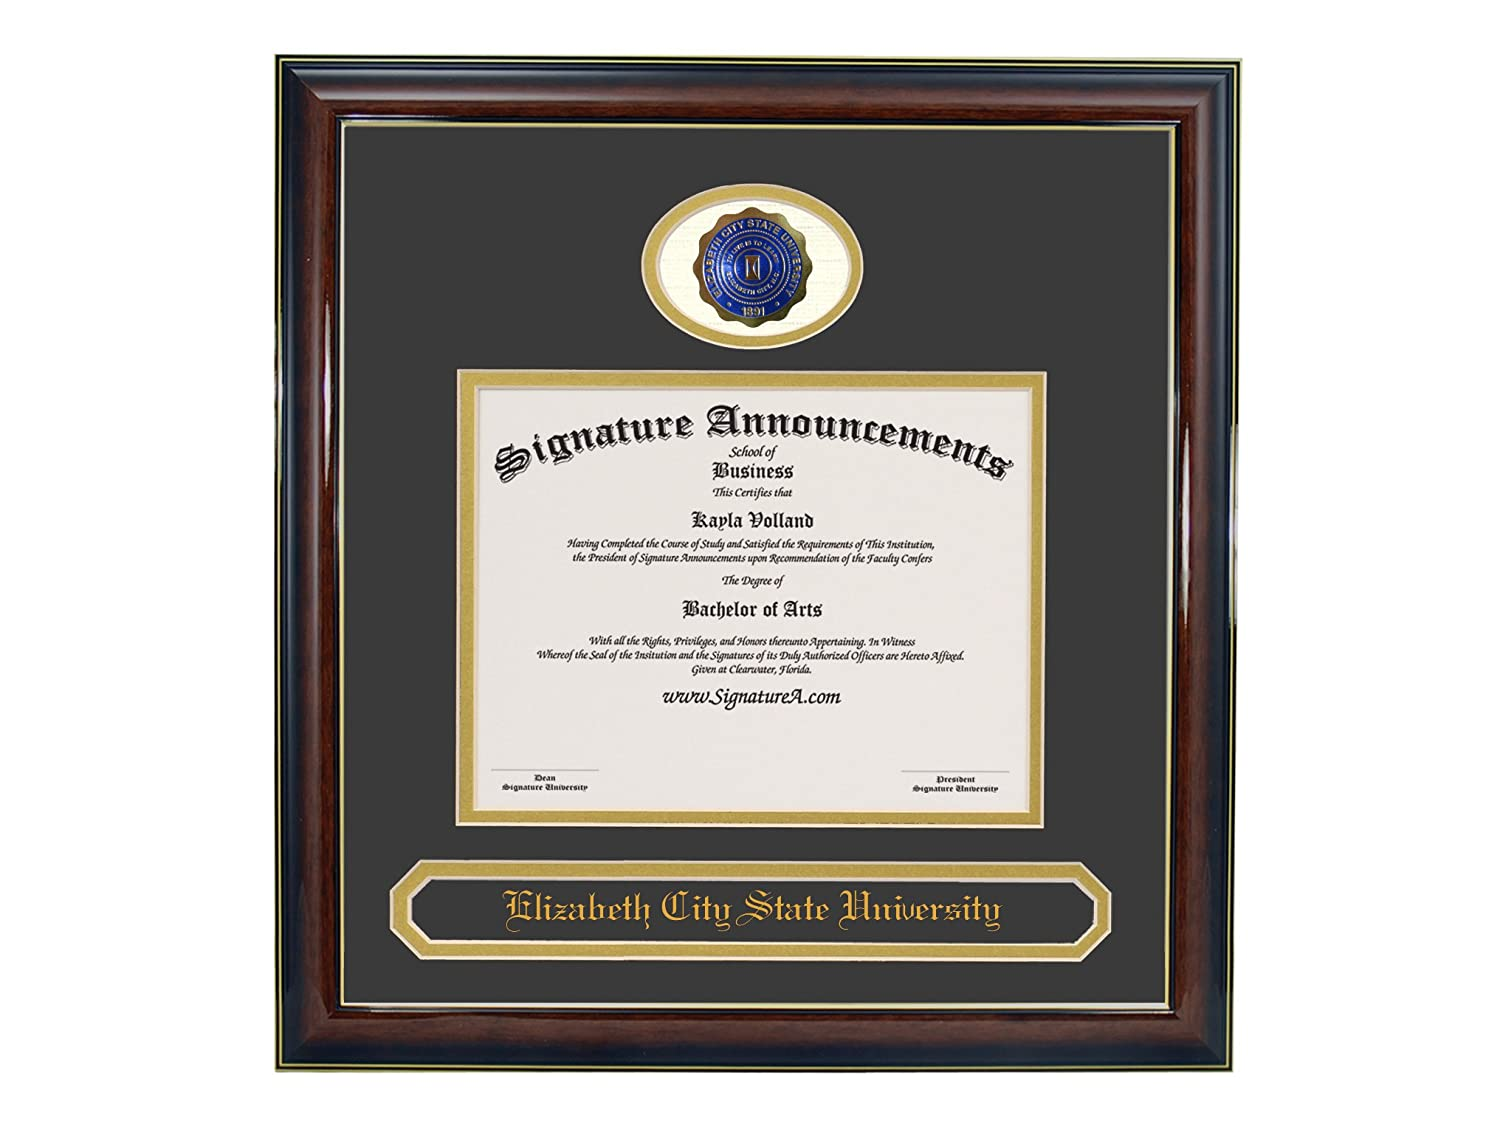 Professional//Doctor Sculpted Foil Seal /& Name Graduation Diploma Frame 16 x 16 Gold Accent Gloss Mahogany Signature Announcements Elizabeth-City-State-University Undergraduate